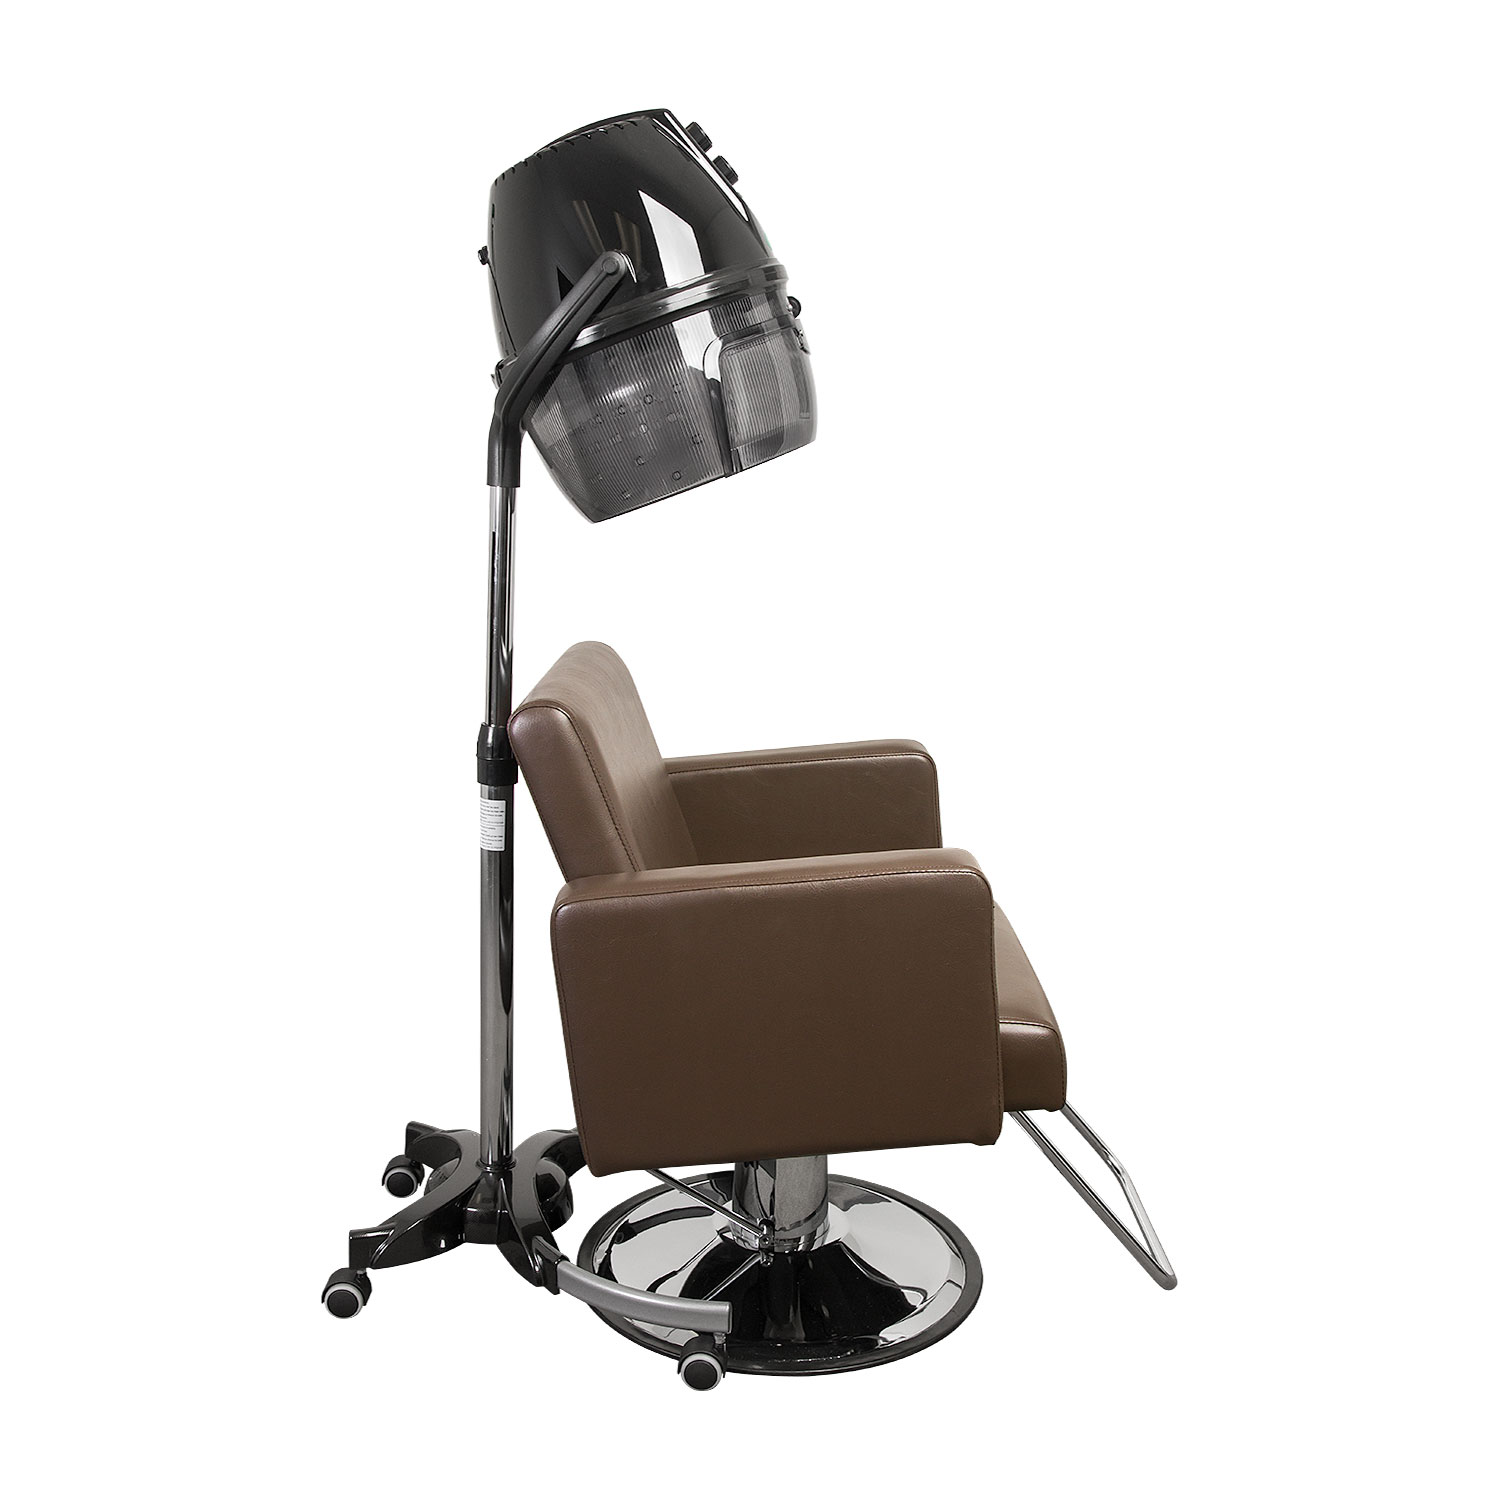 Black Brio Hooded Salon Hair Dryer On Wheels alternative product image 3